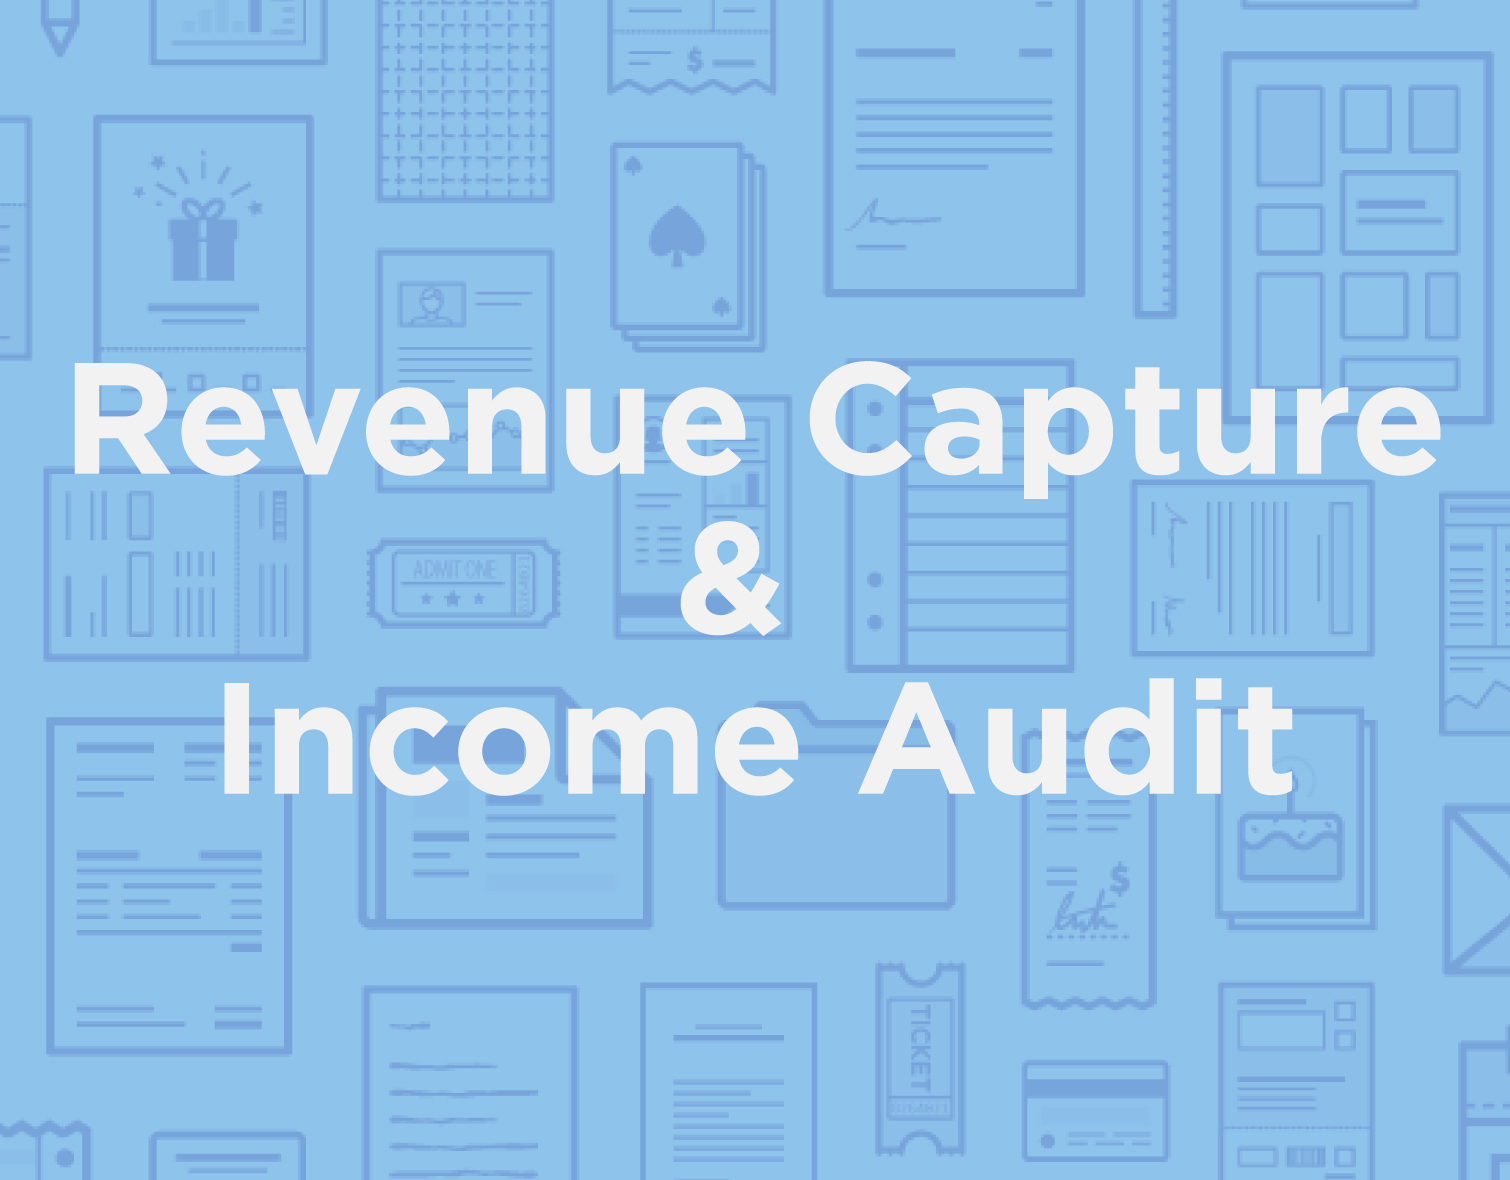 icon_products_Revenue-Capture_&_Income-Audit_selected.jpg